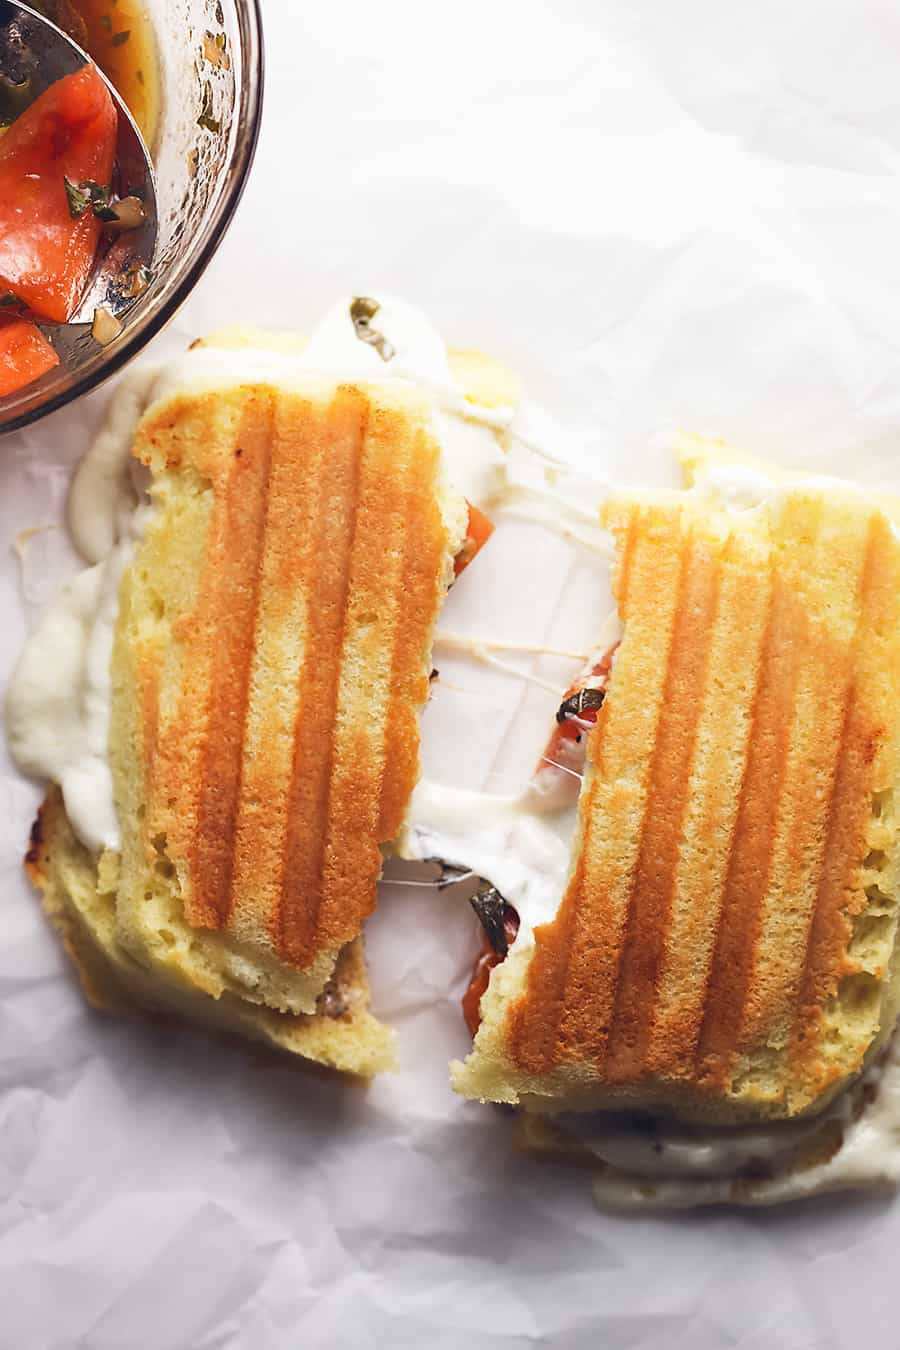 a finished low carb panini with melted mozzarella cheese and tomatoes